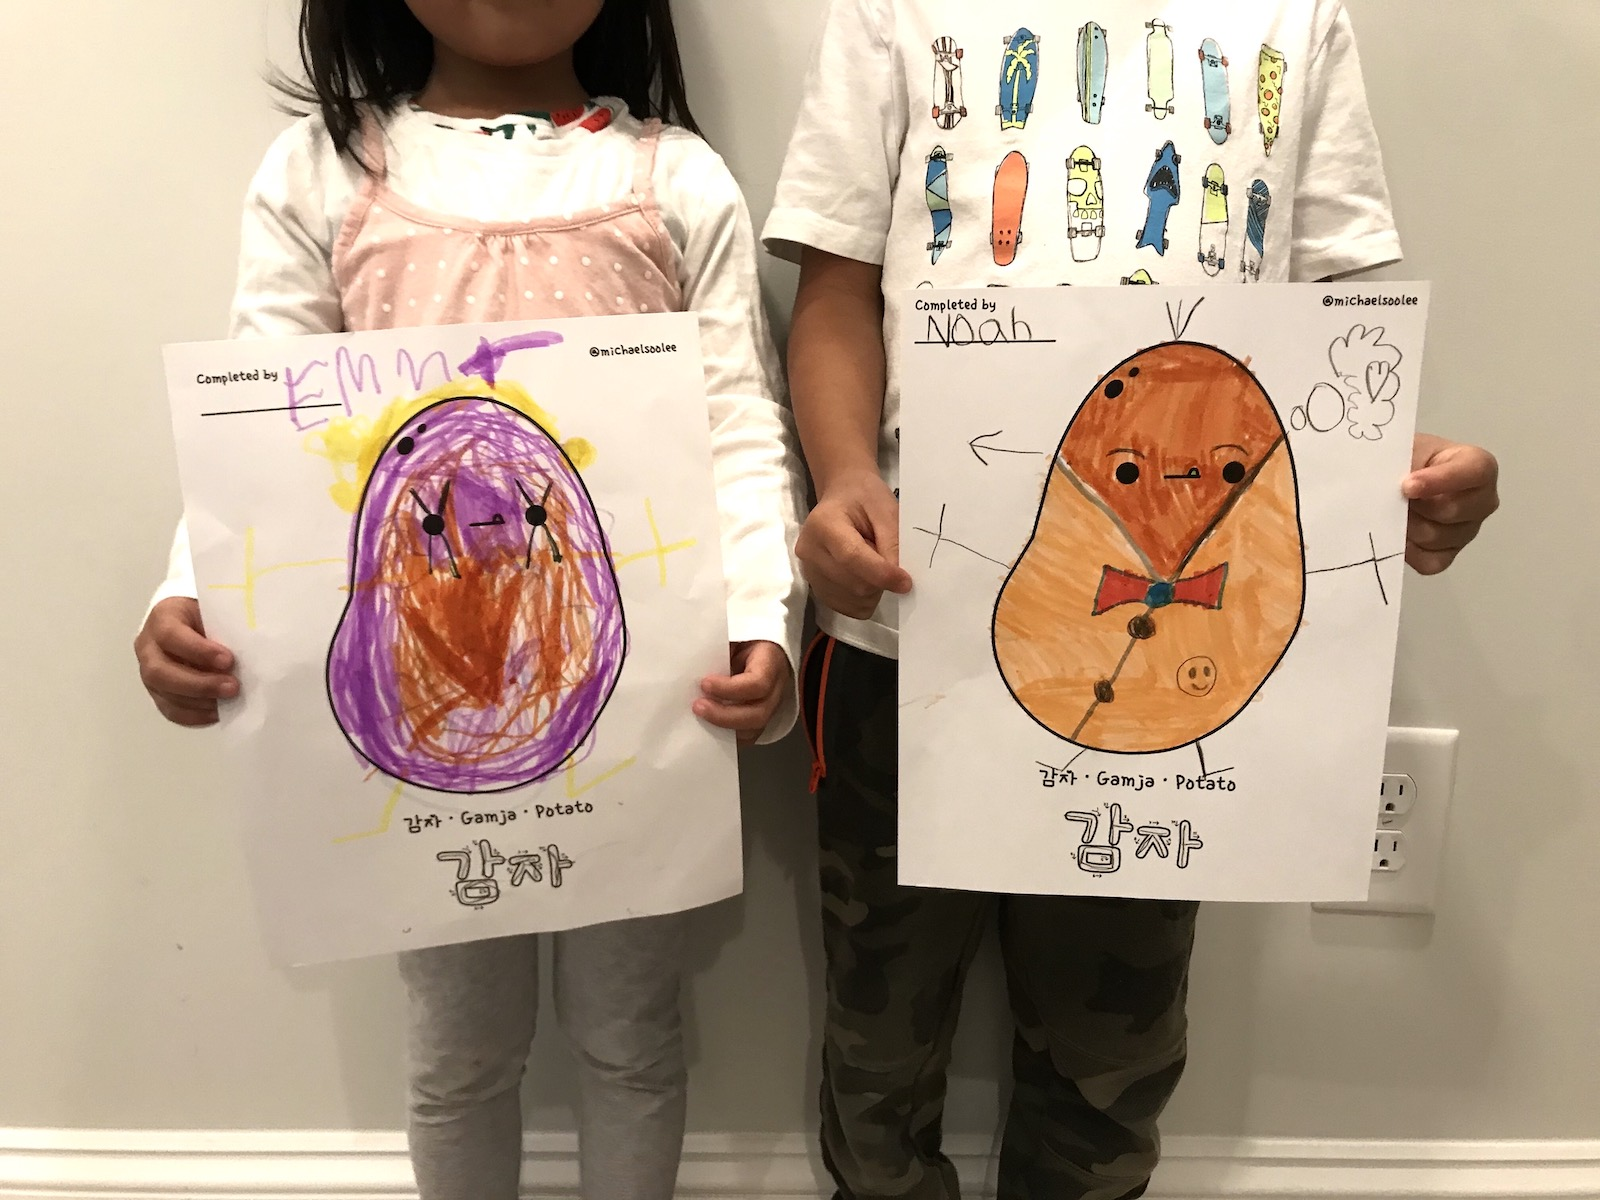 My kids' coloring of the potato illustration